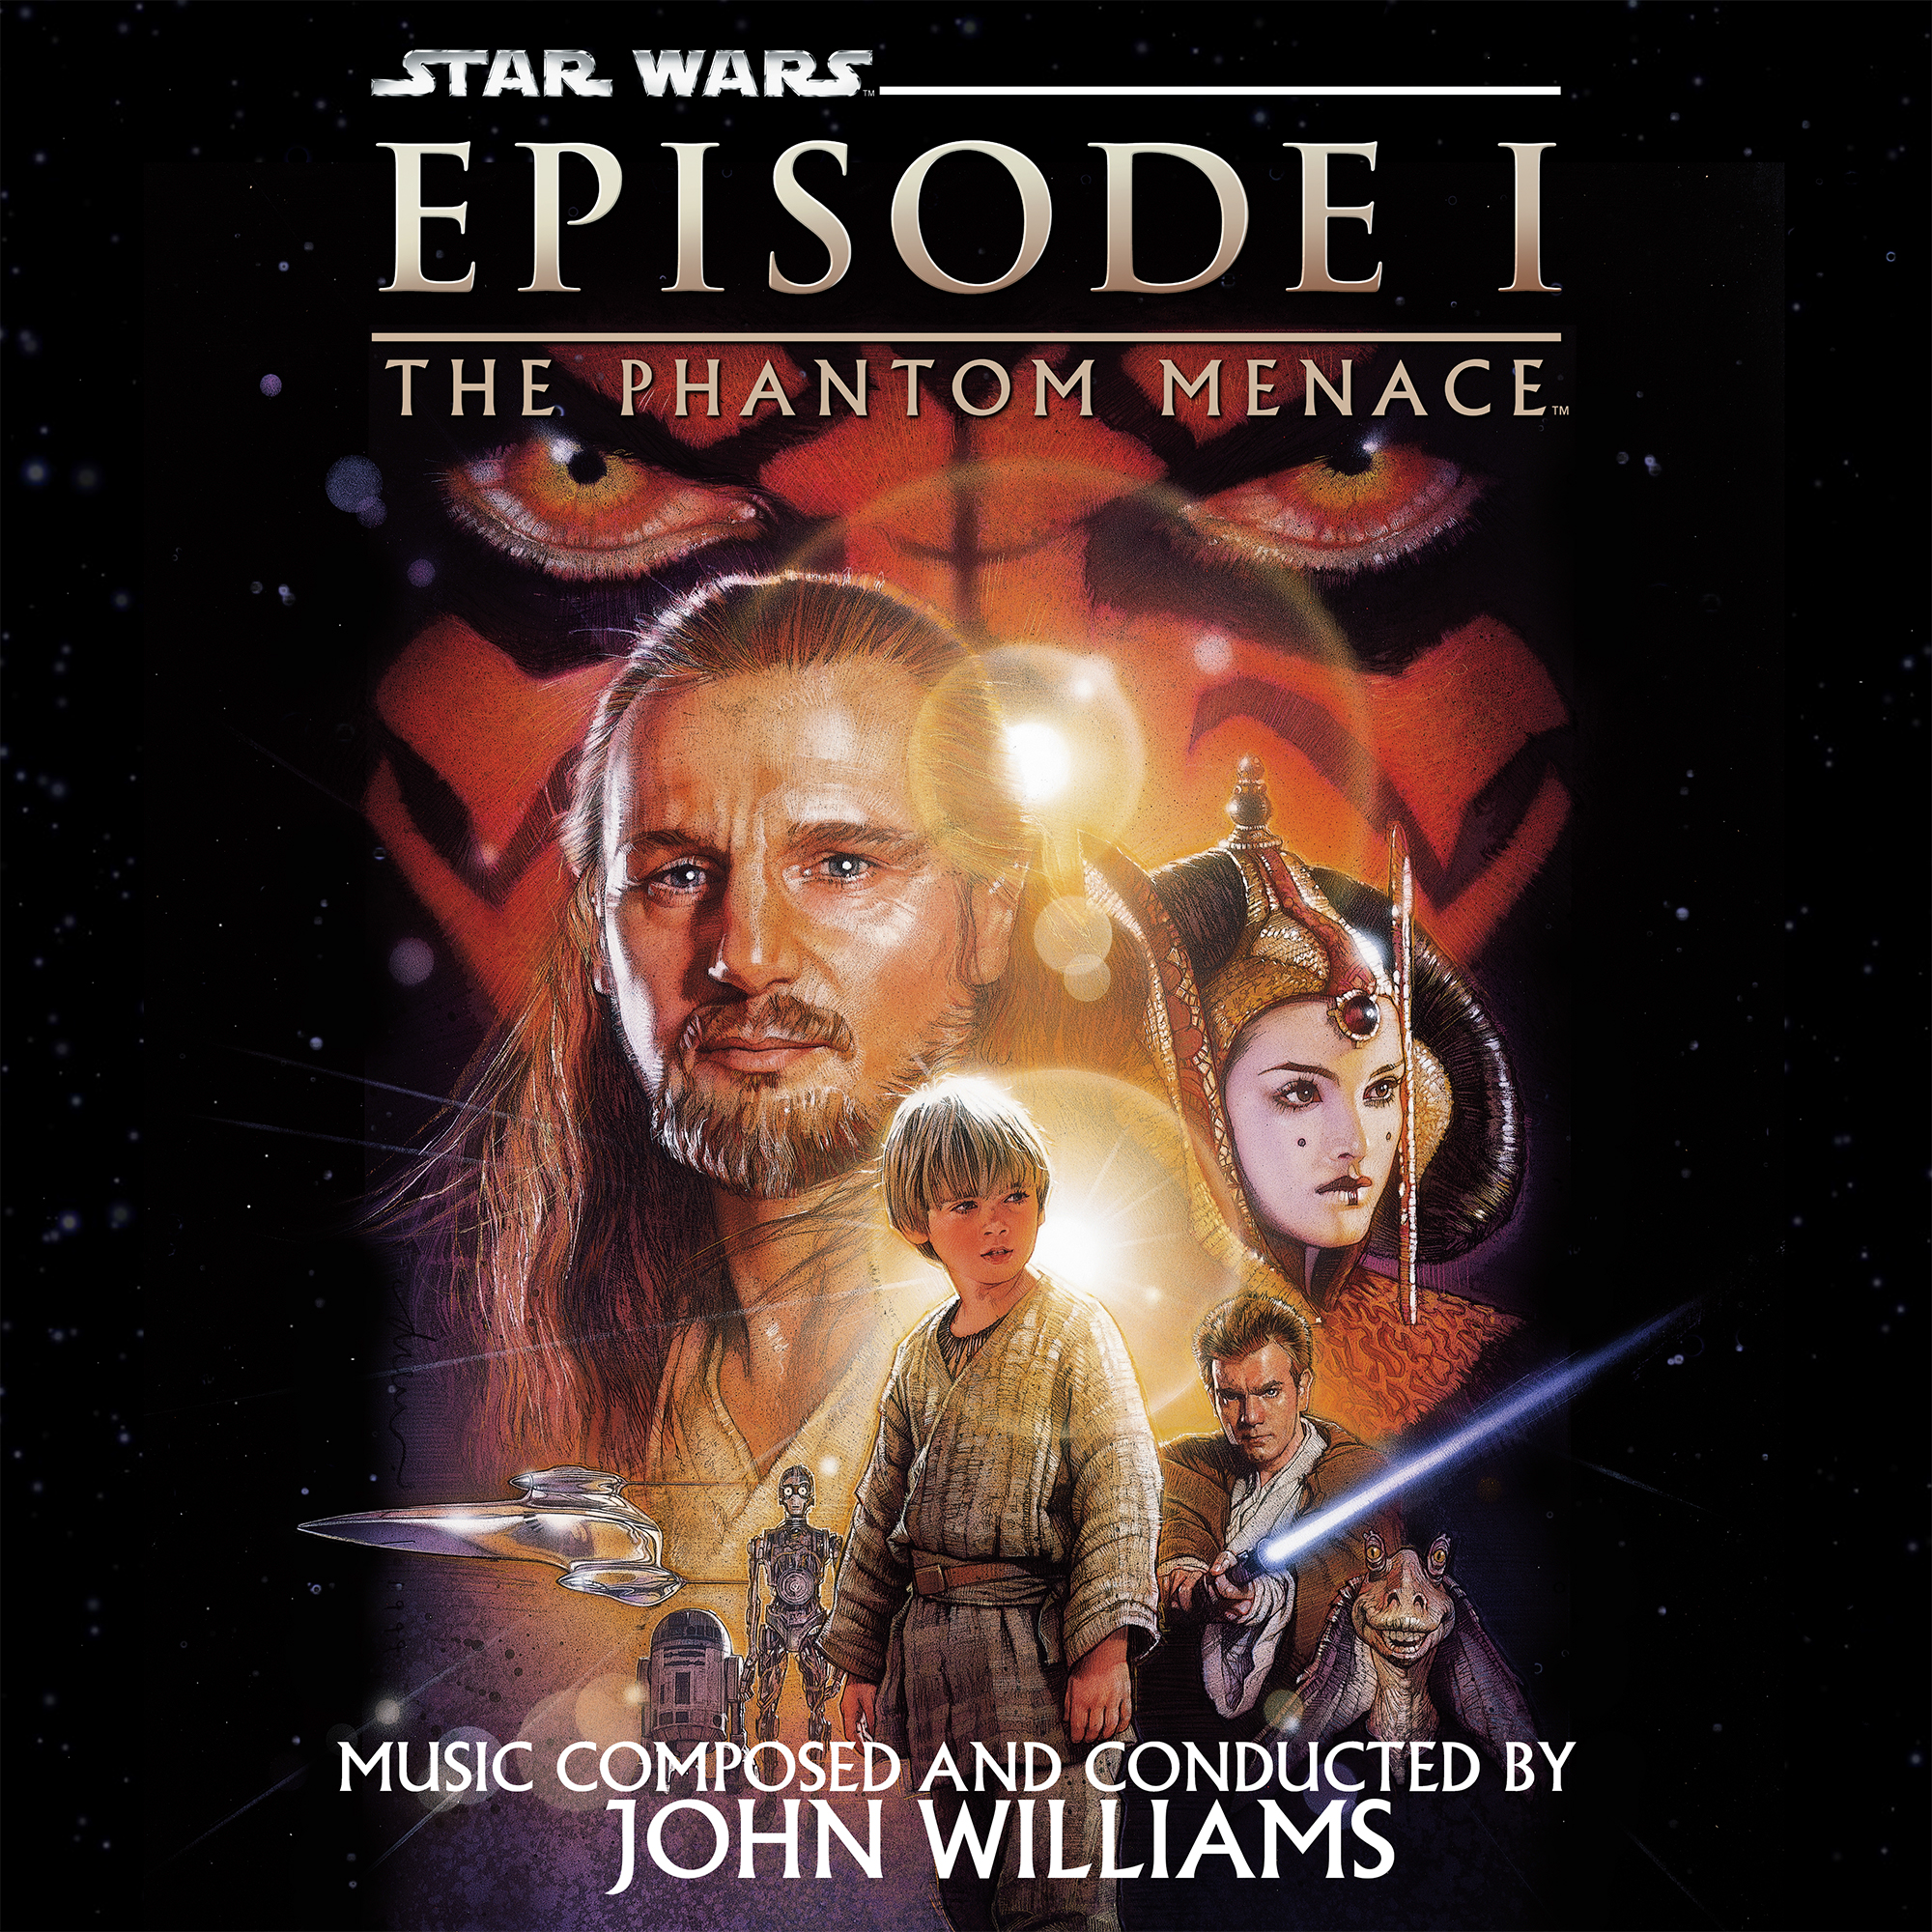 Star Wars Episode I The Phantom Menace Original Motion